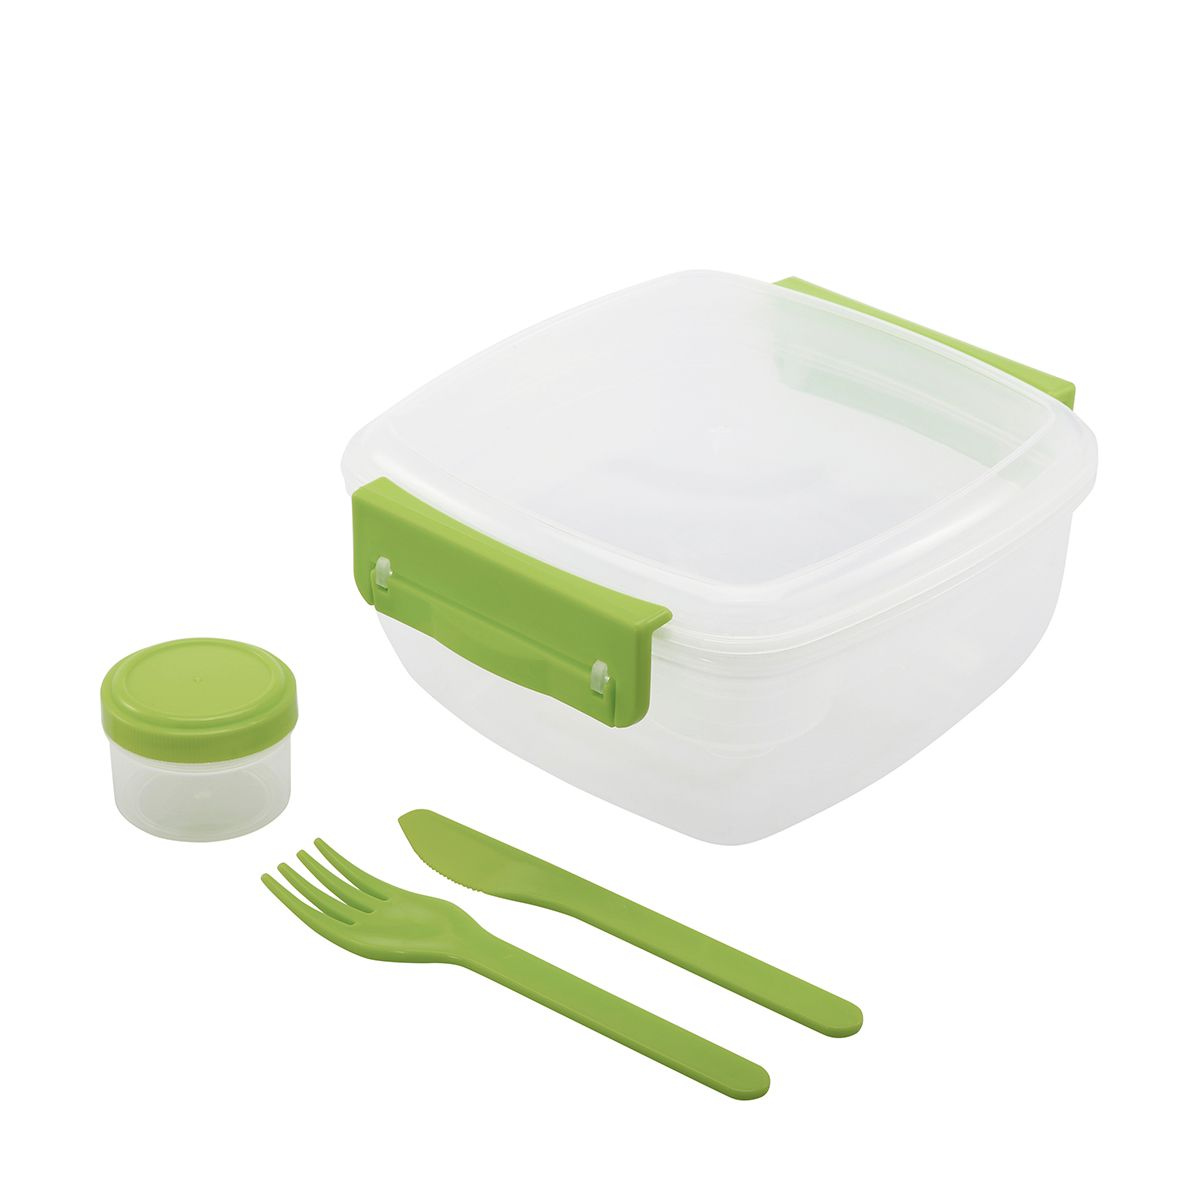 Lunch box with utensils green kmart lunch box